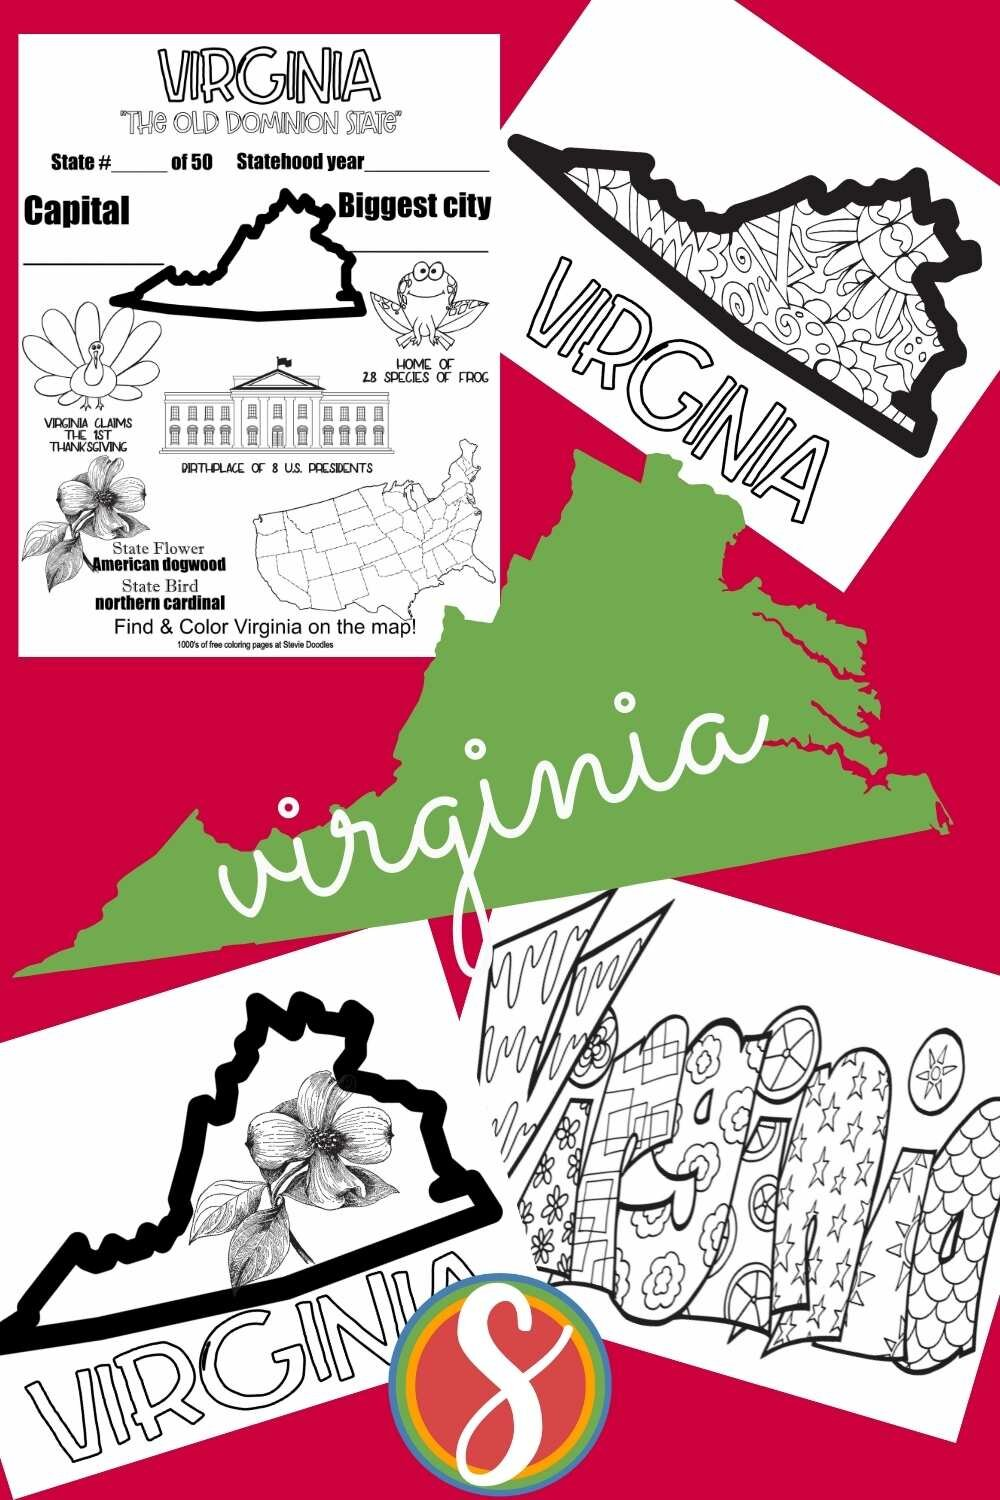 FREE! Find your favorite state and print and color the activity pages for your whole class